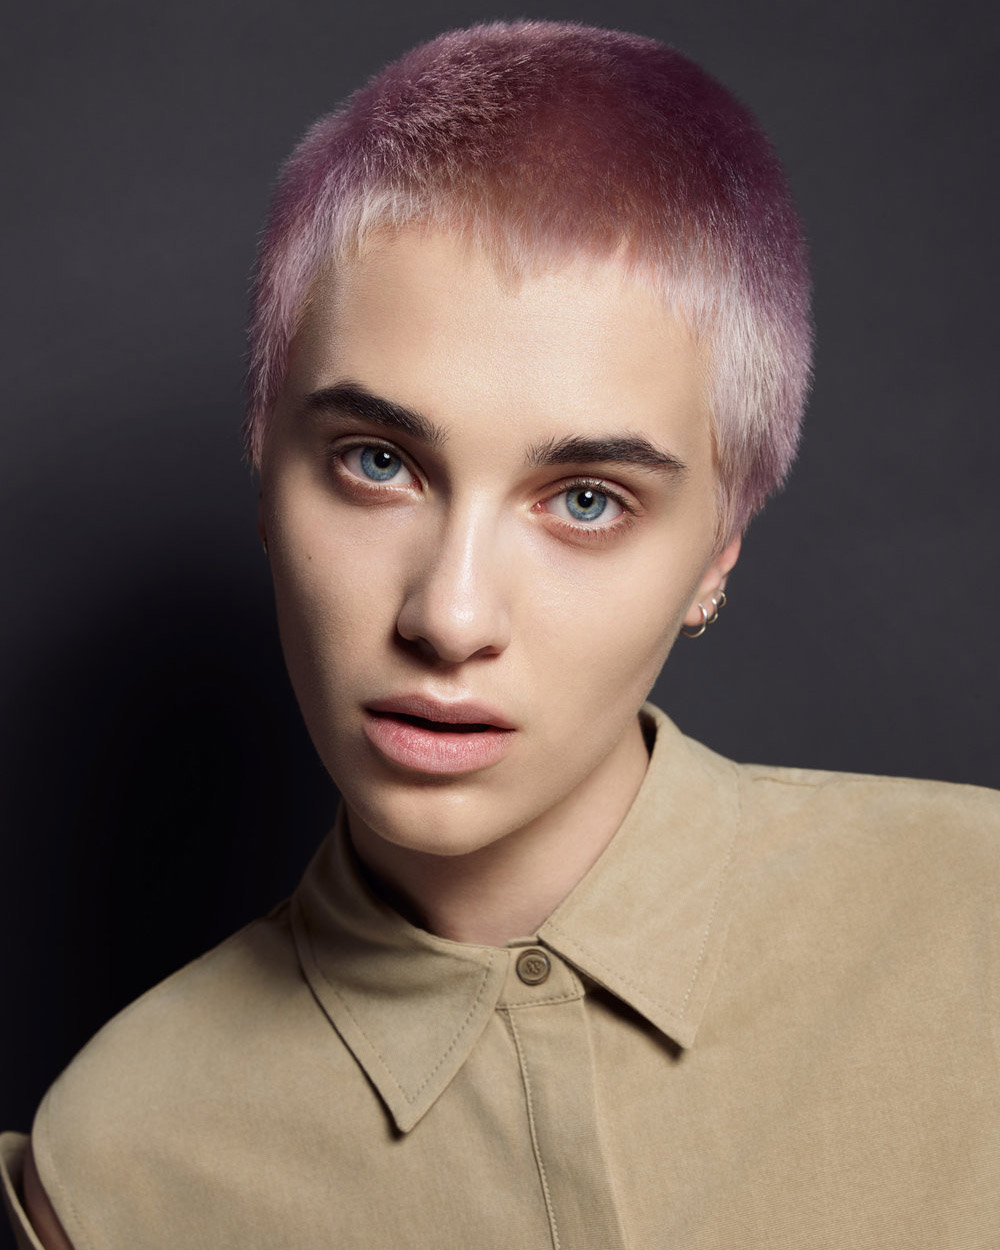 Jack_Eames_Hair_Colour_London_Shot_02.jpg